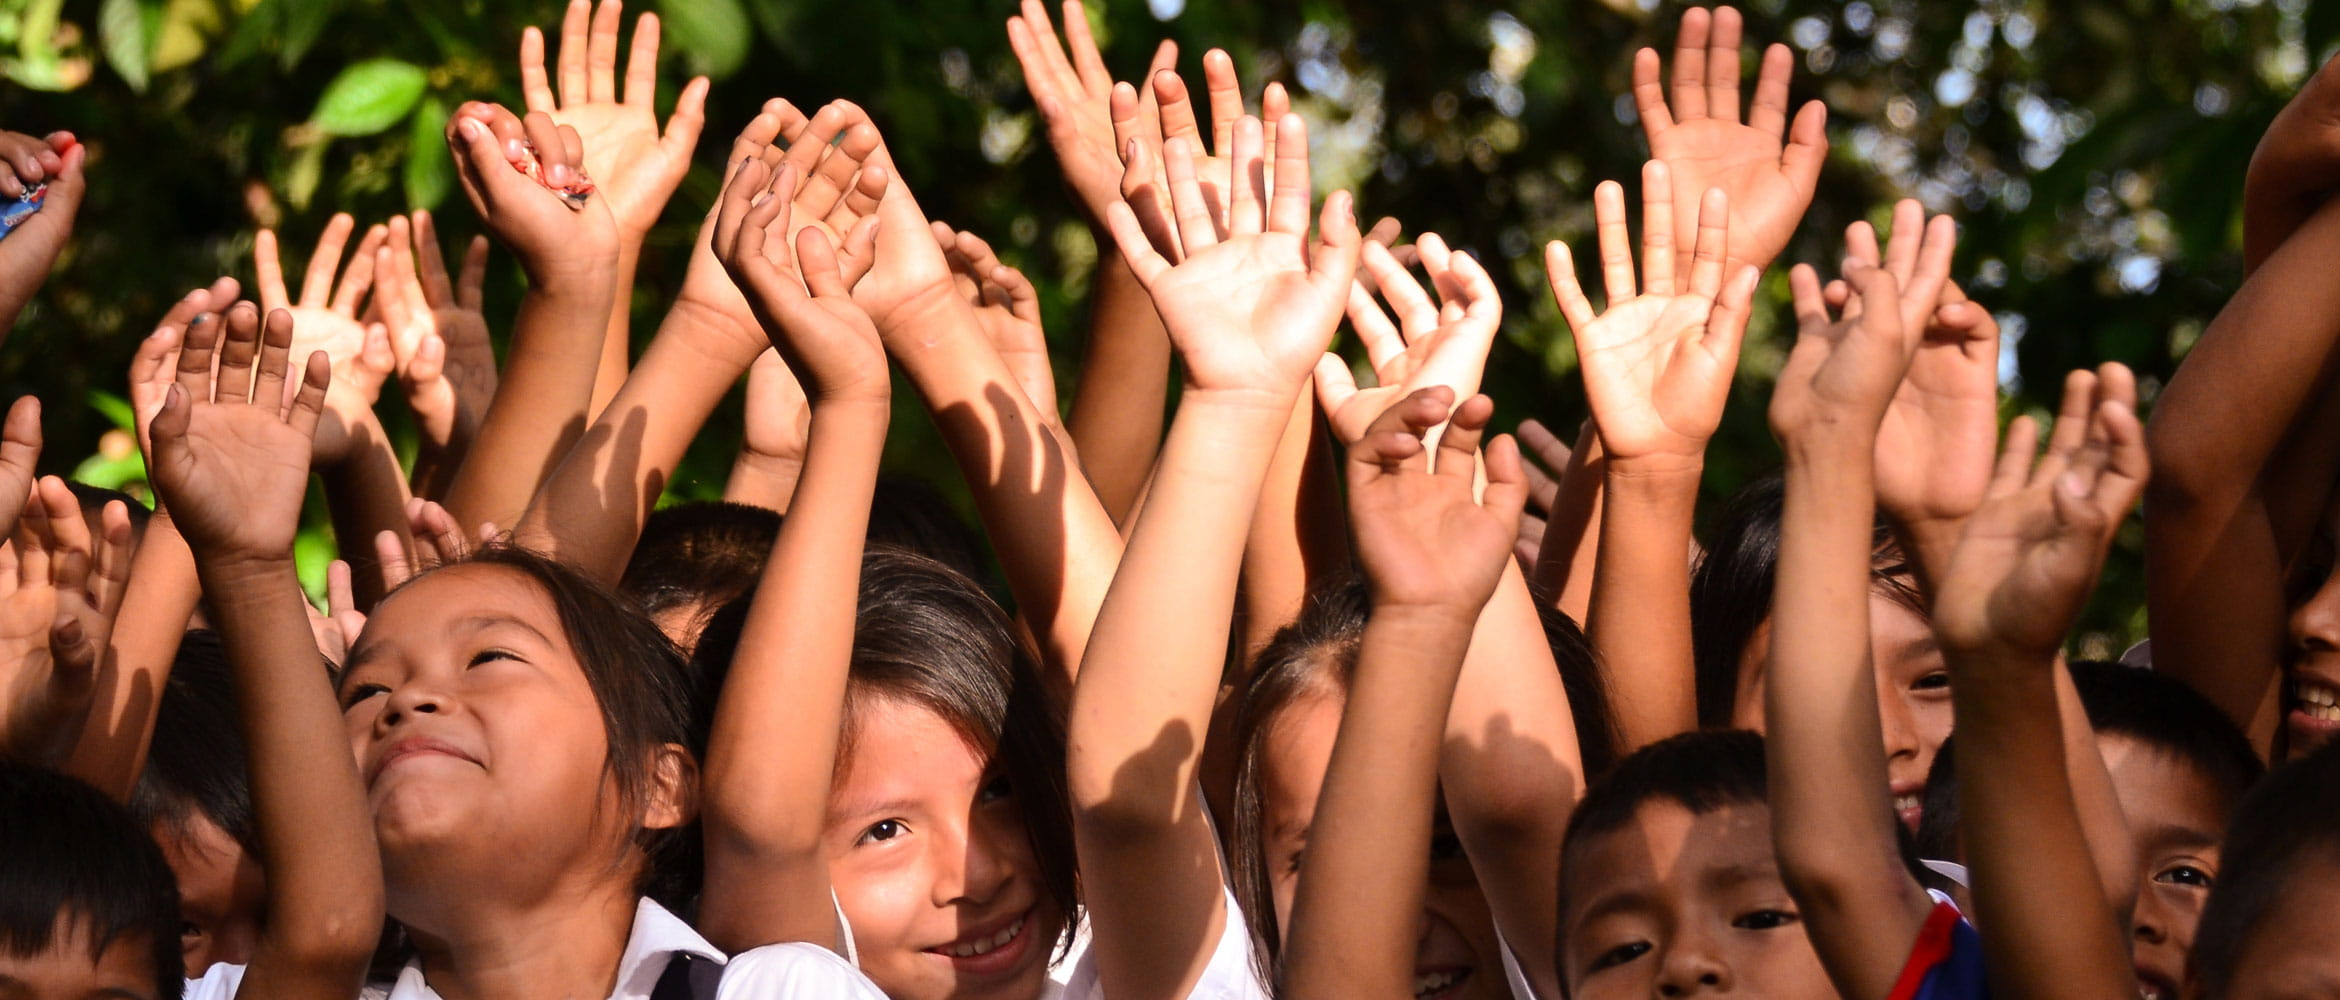 Crowd of smiling children with hands in the air reaching up to the sky